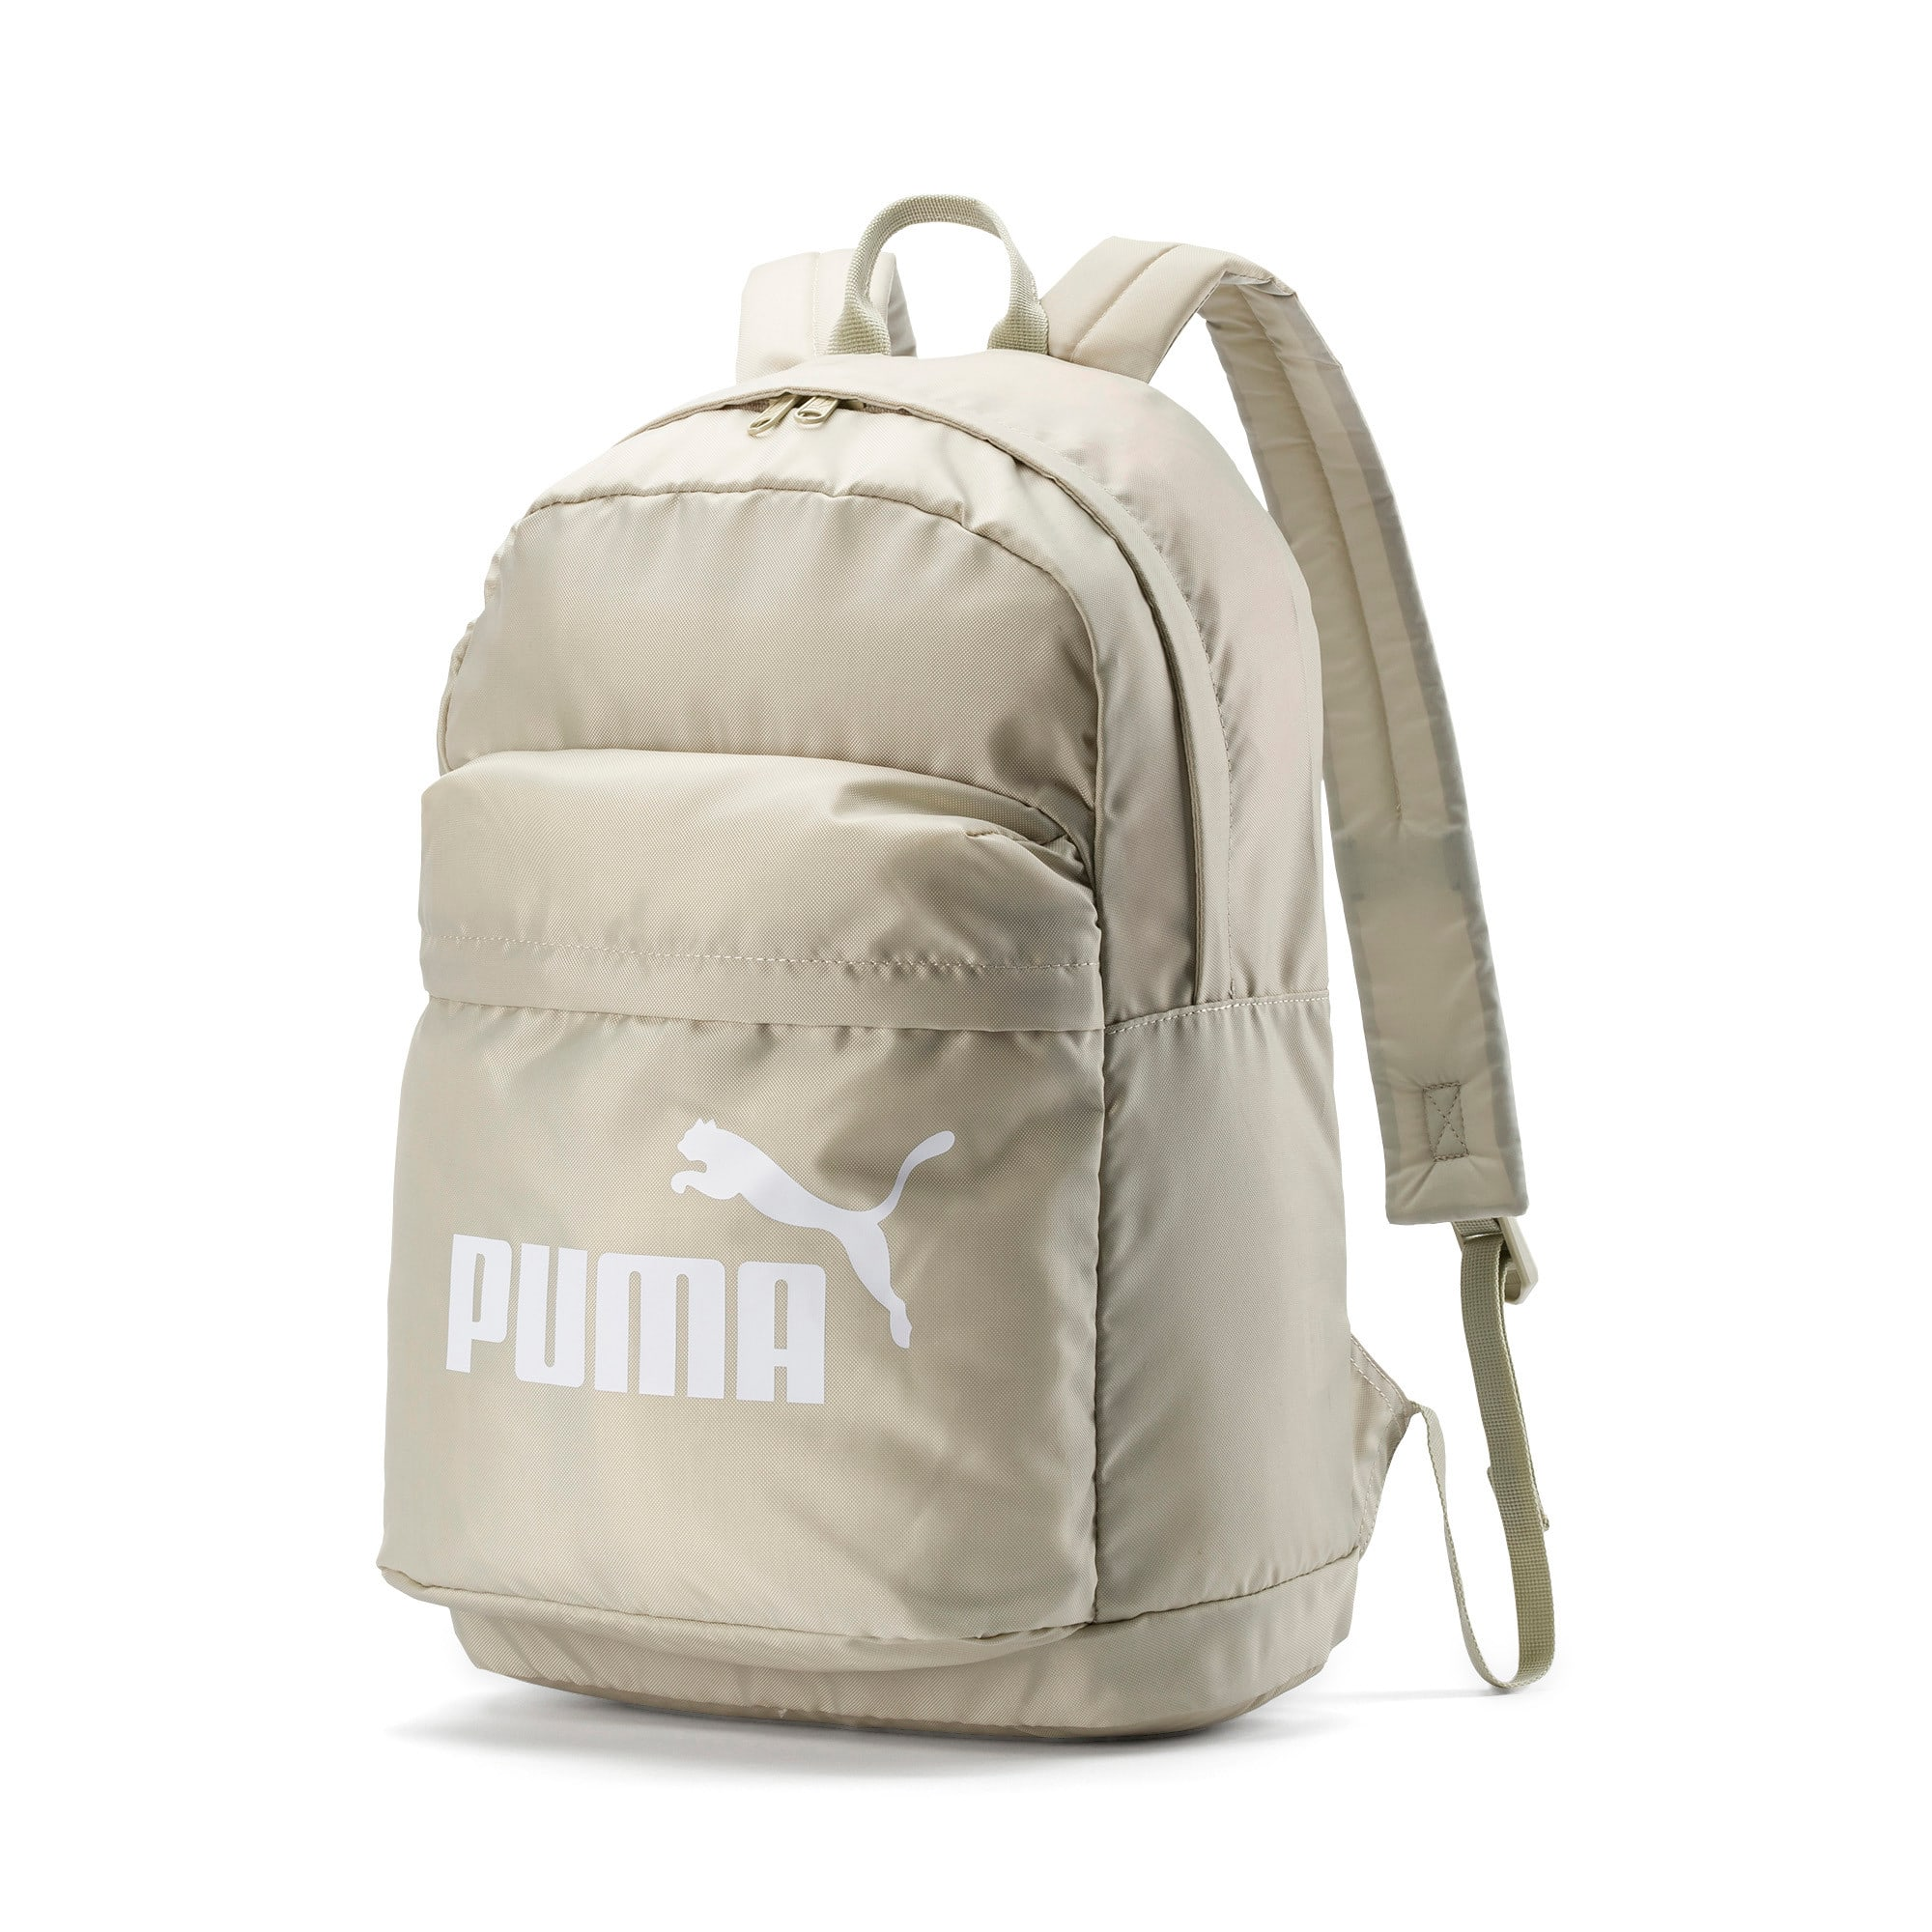 Thumbnail 1 of Classic Backpack, Overcast, medium-IND